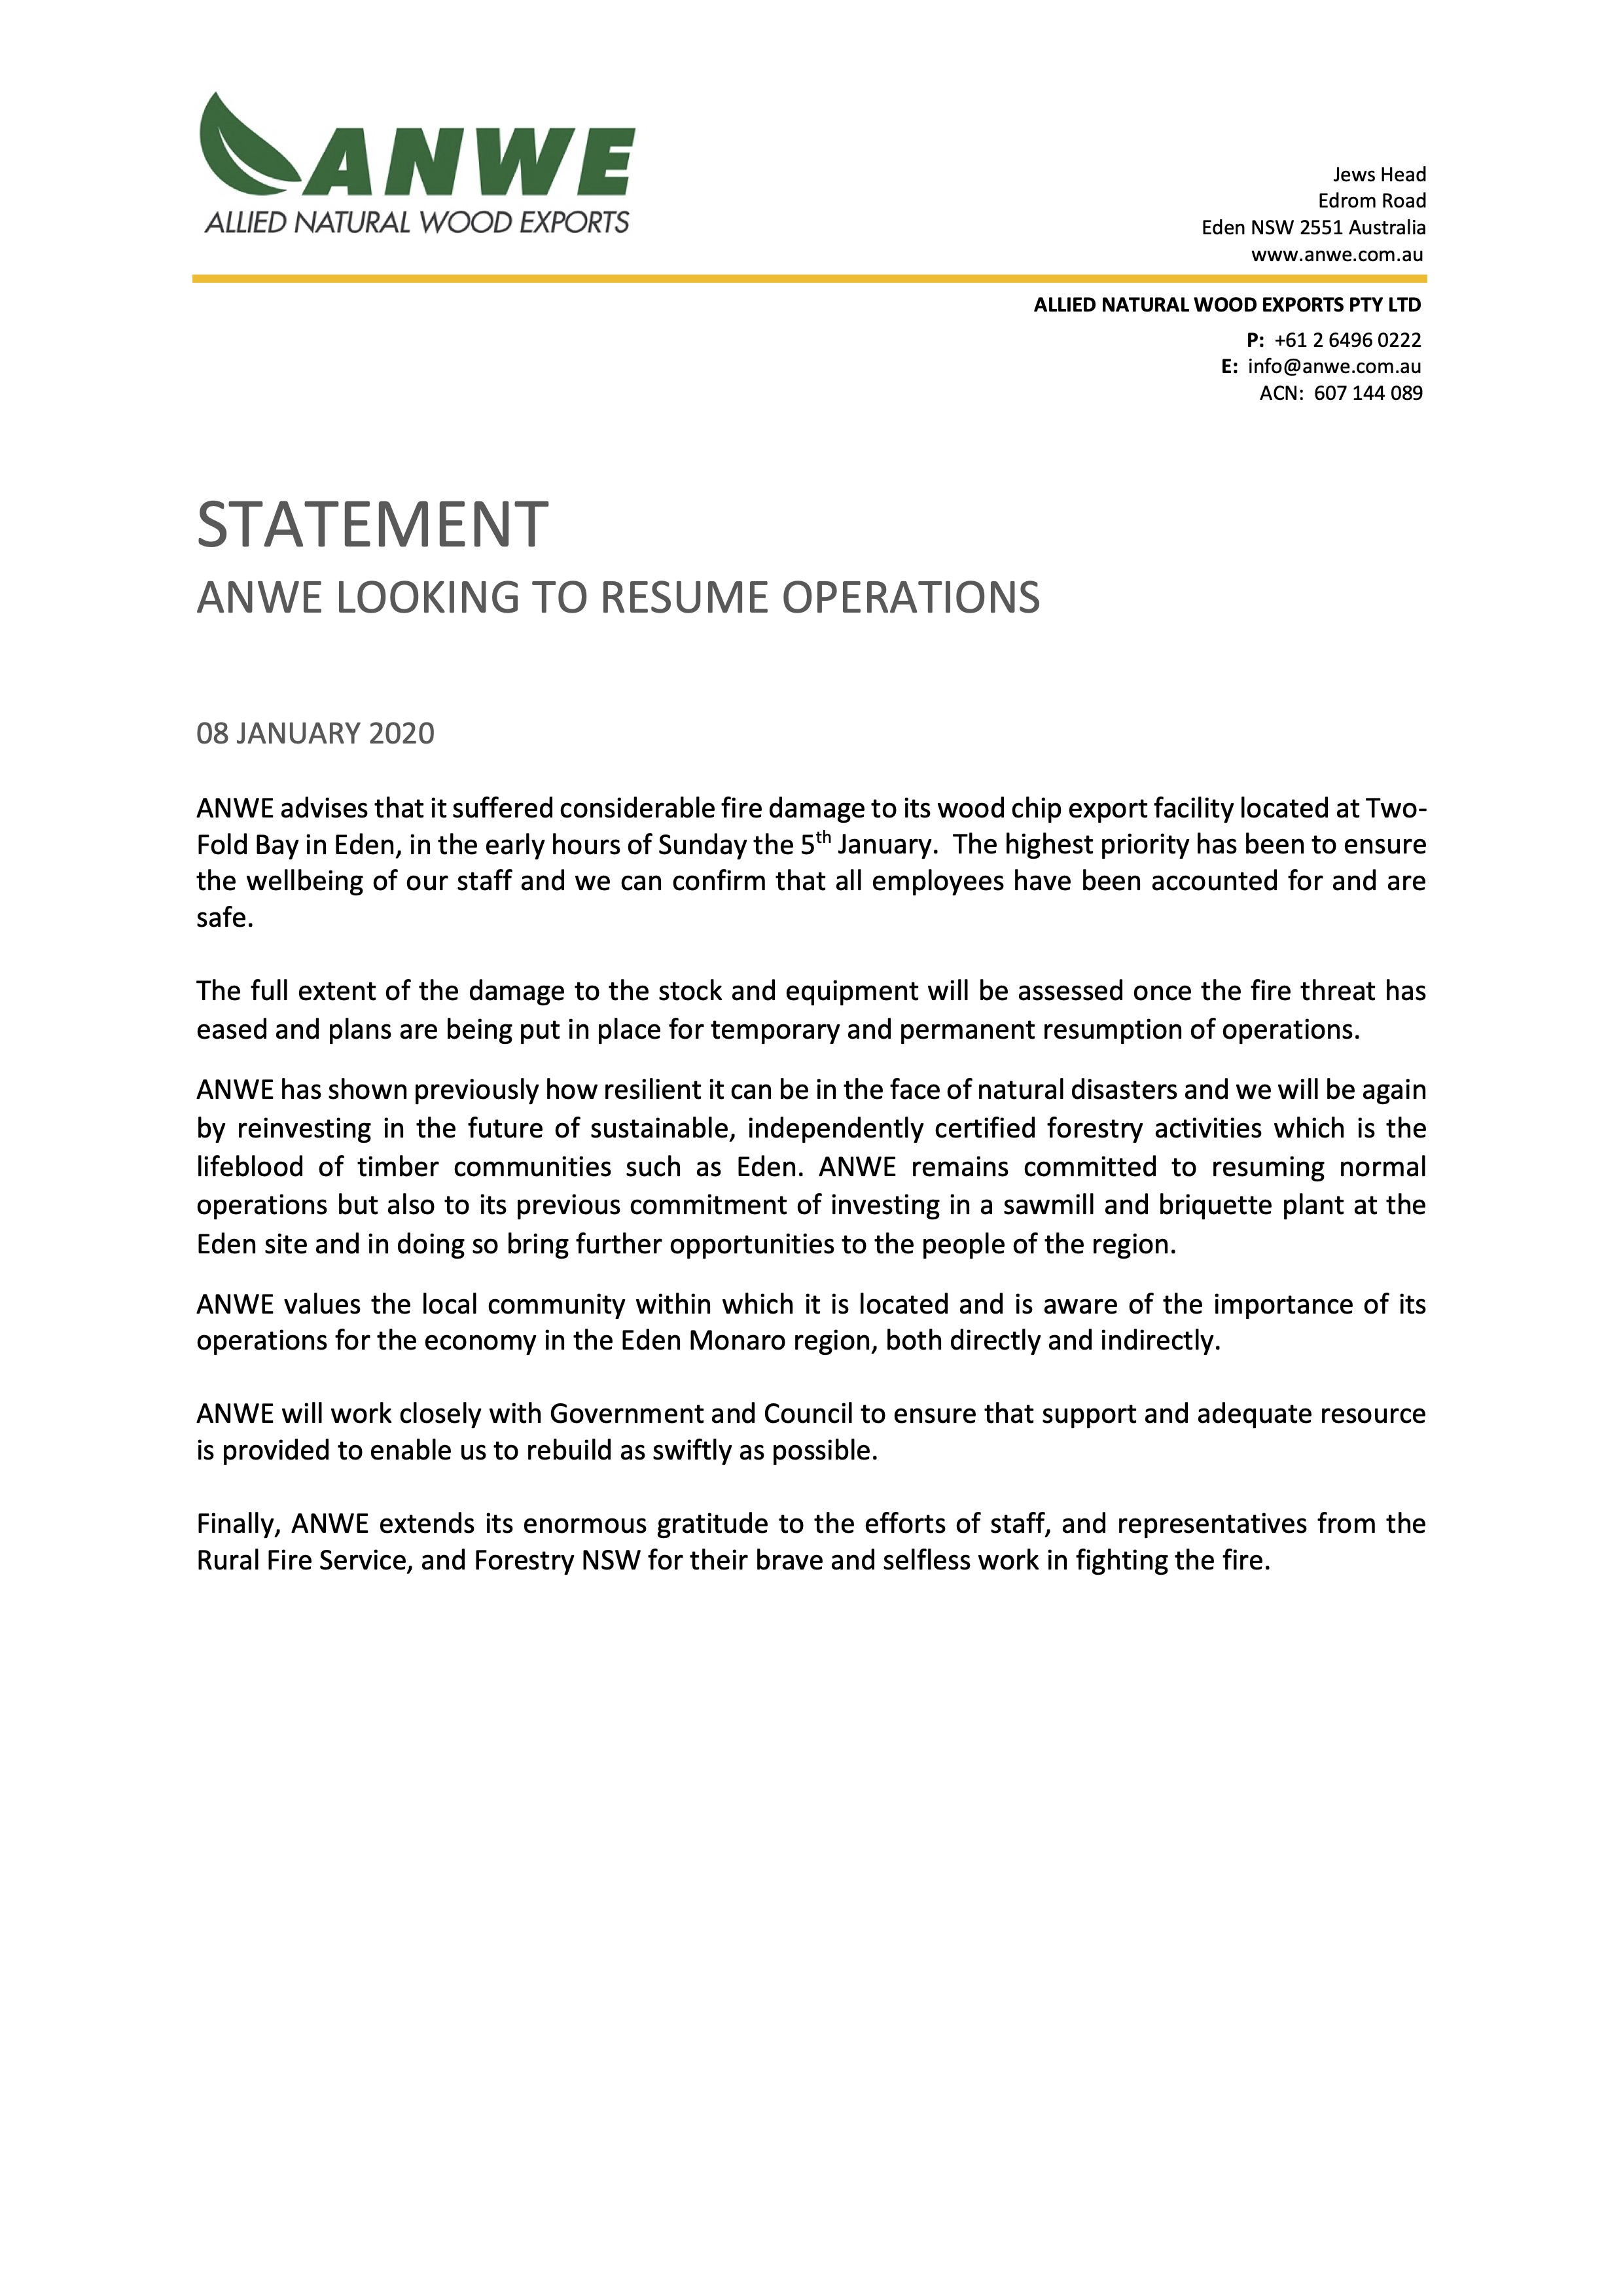 ANWE Fire Statement